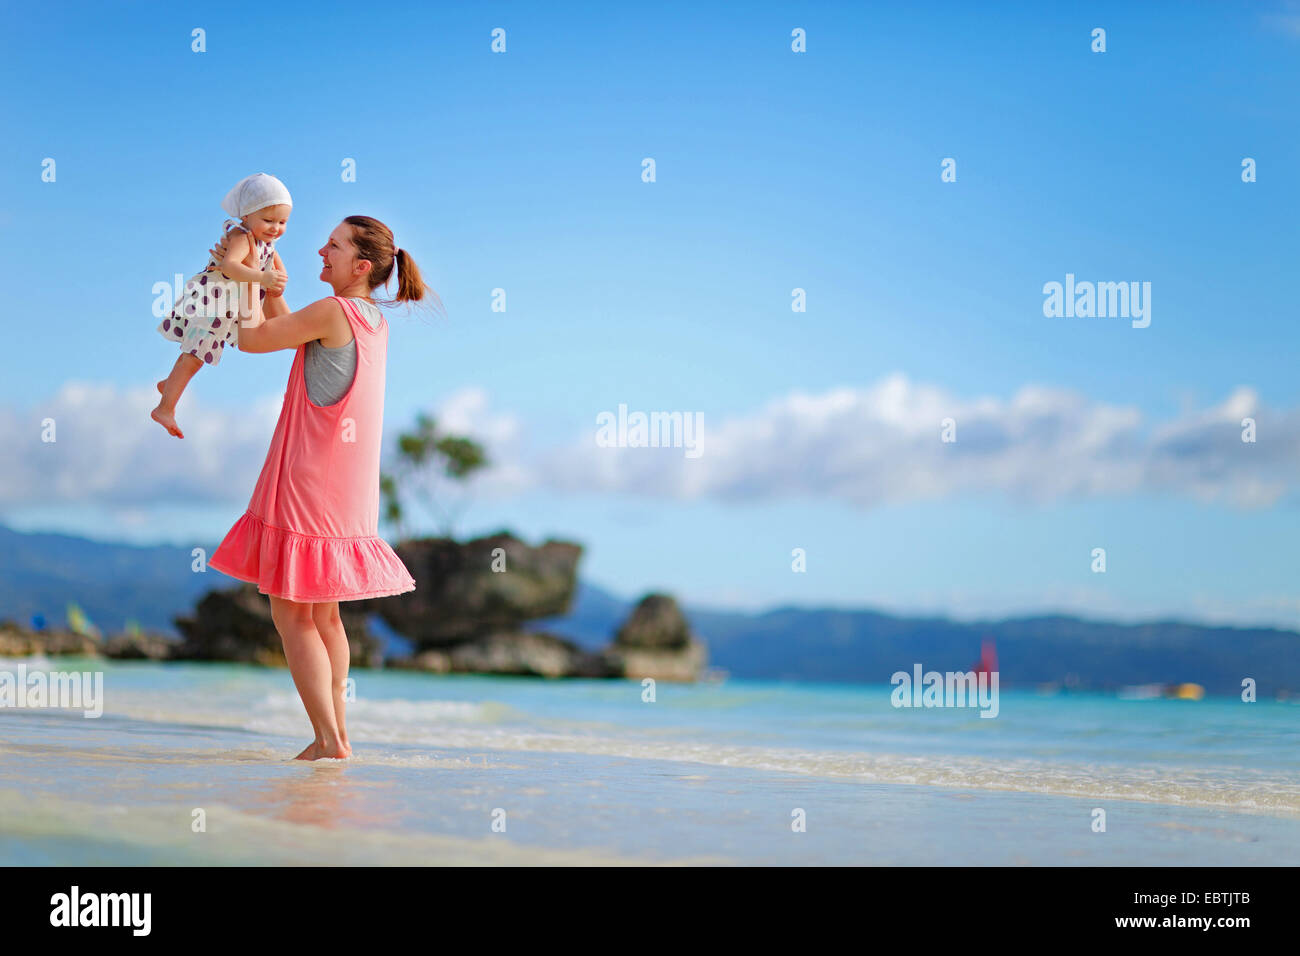 young mother playing with der daughter on the sandy beach, Philippines, Boracay - Stock Image